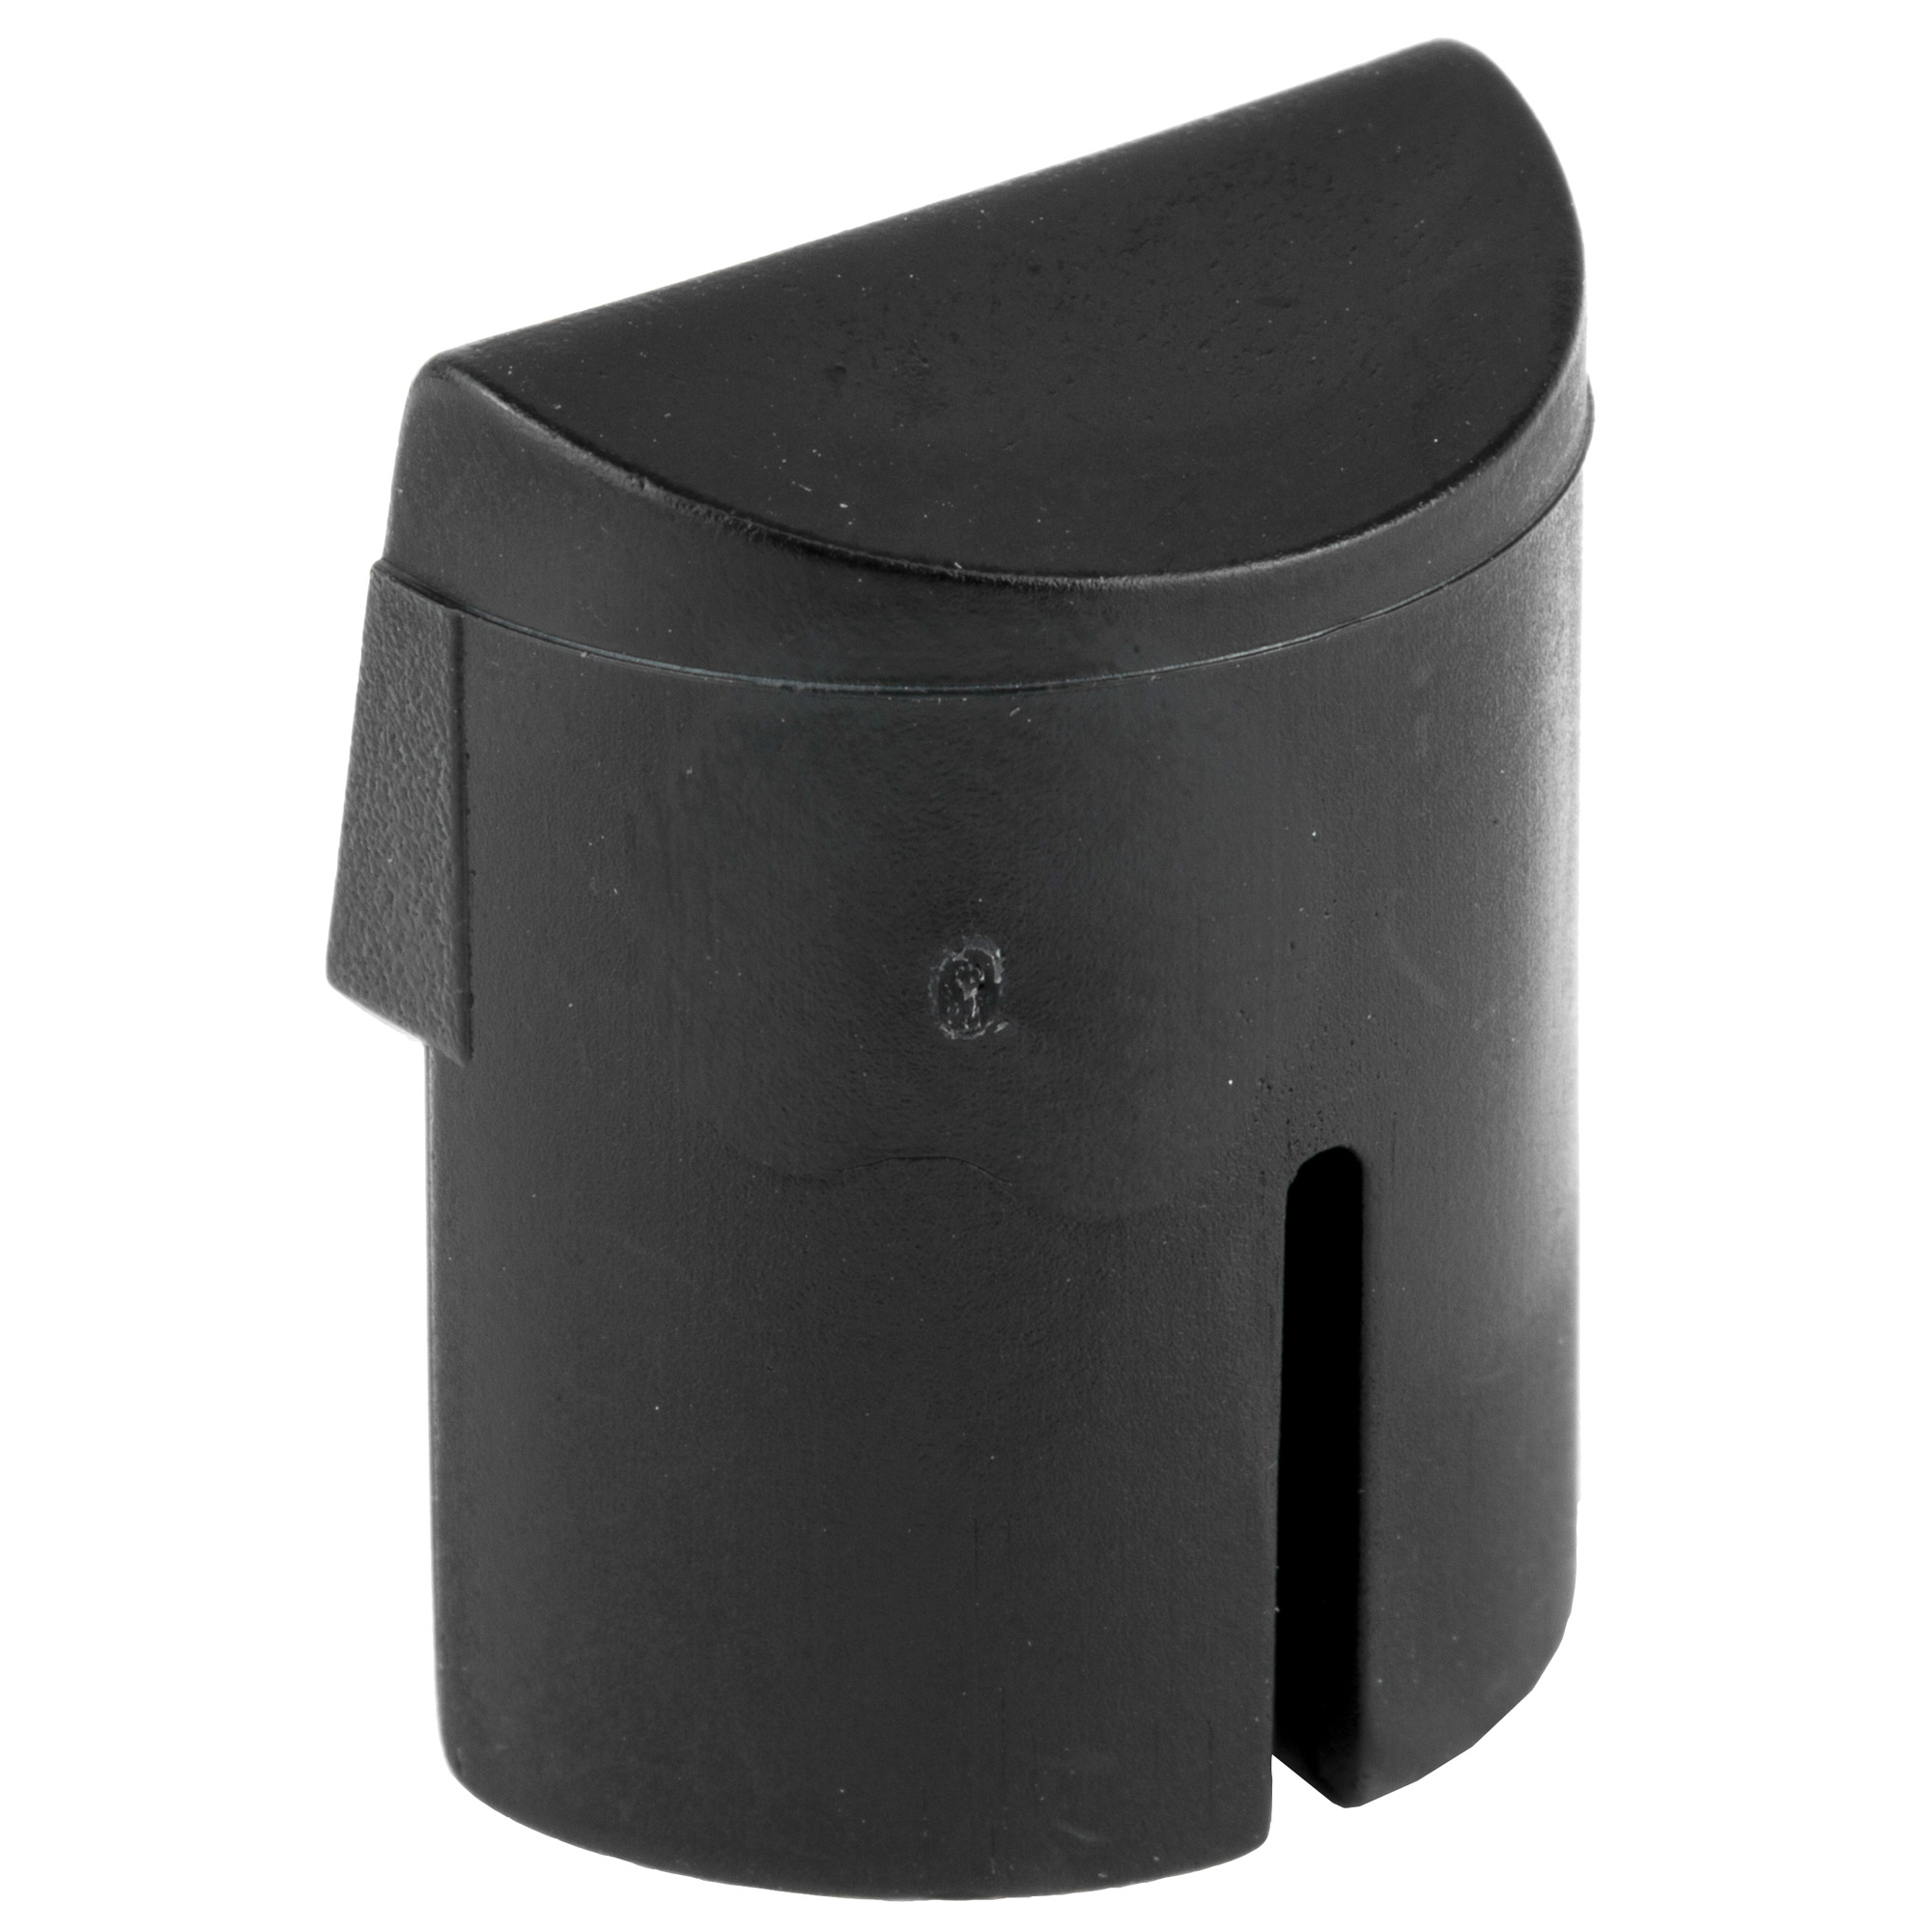 This unit fits in the bottom rear cavity of a Glock M36 utilizing a friction fit to secure it in the frame.